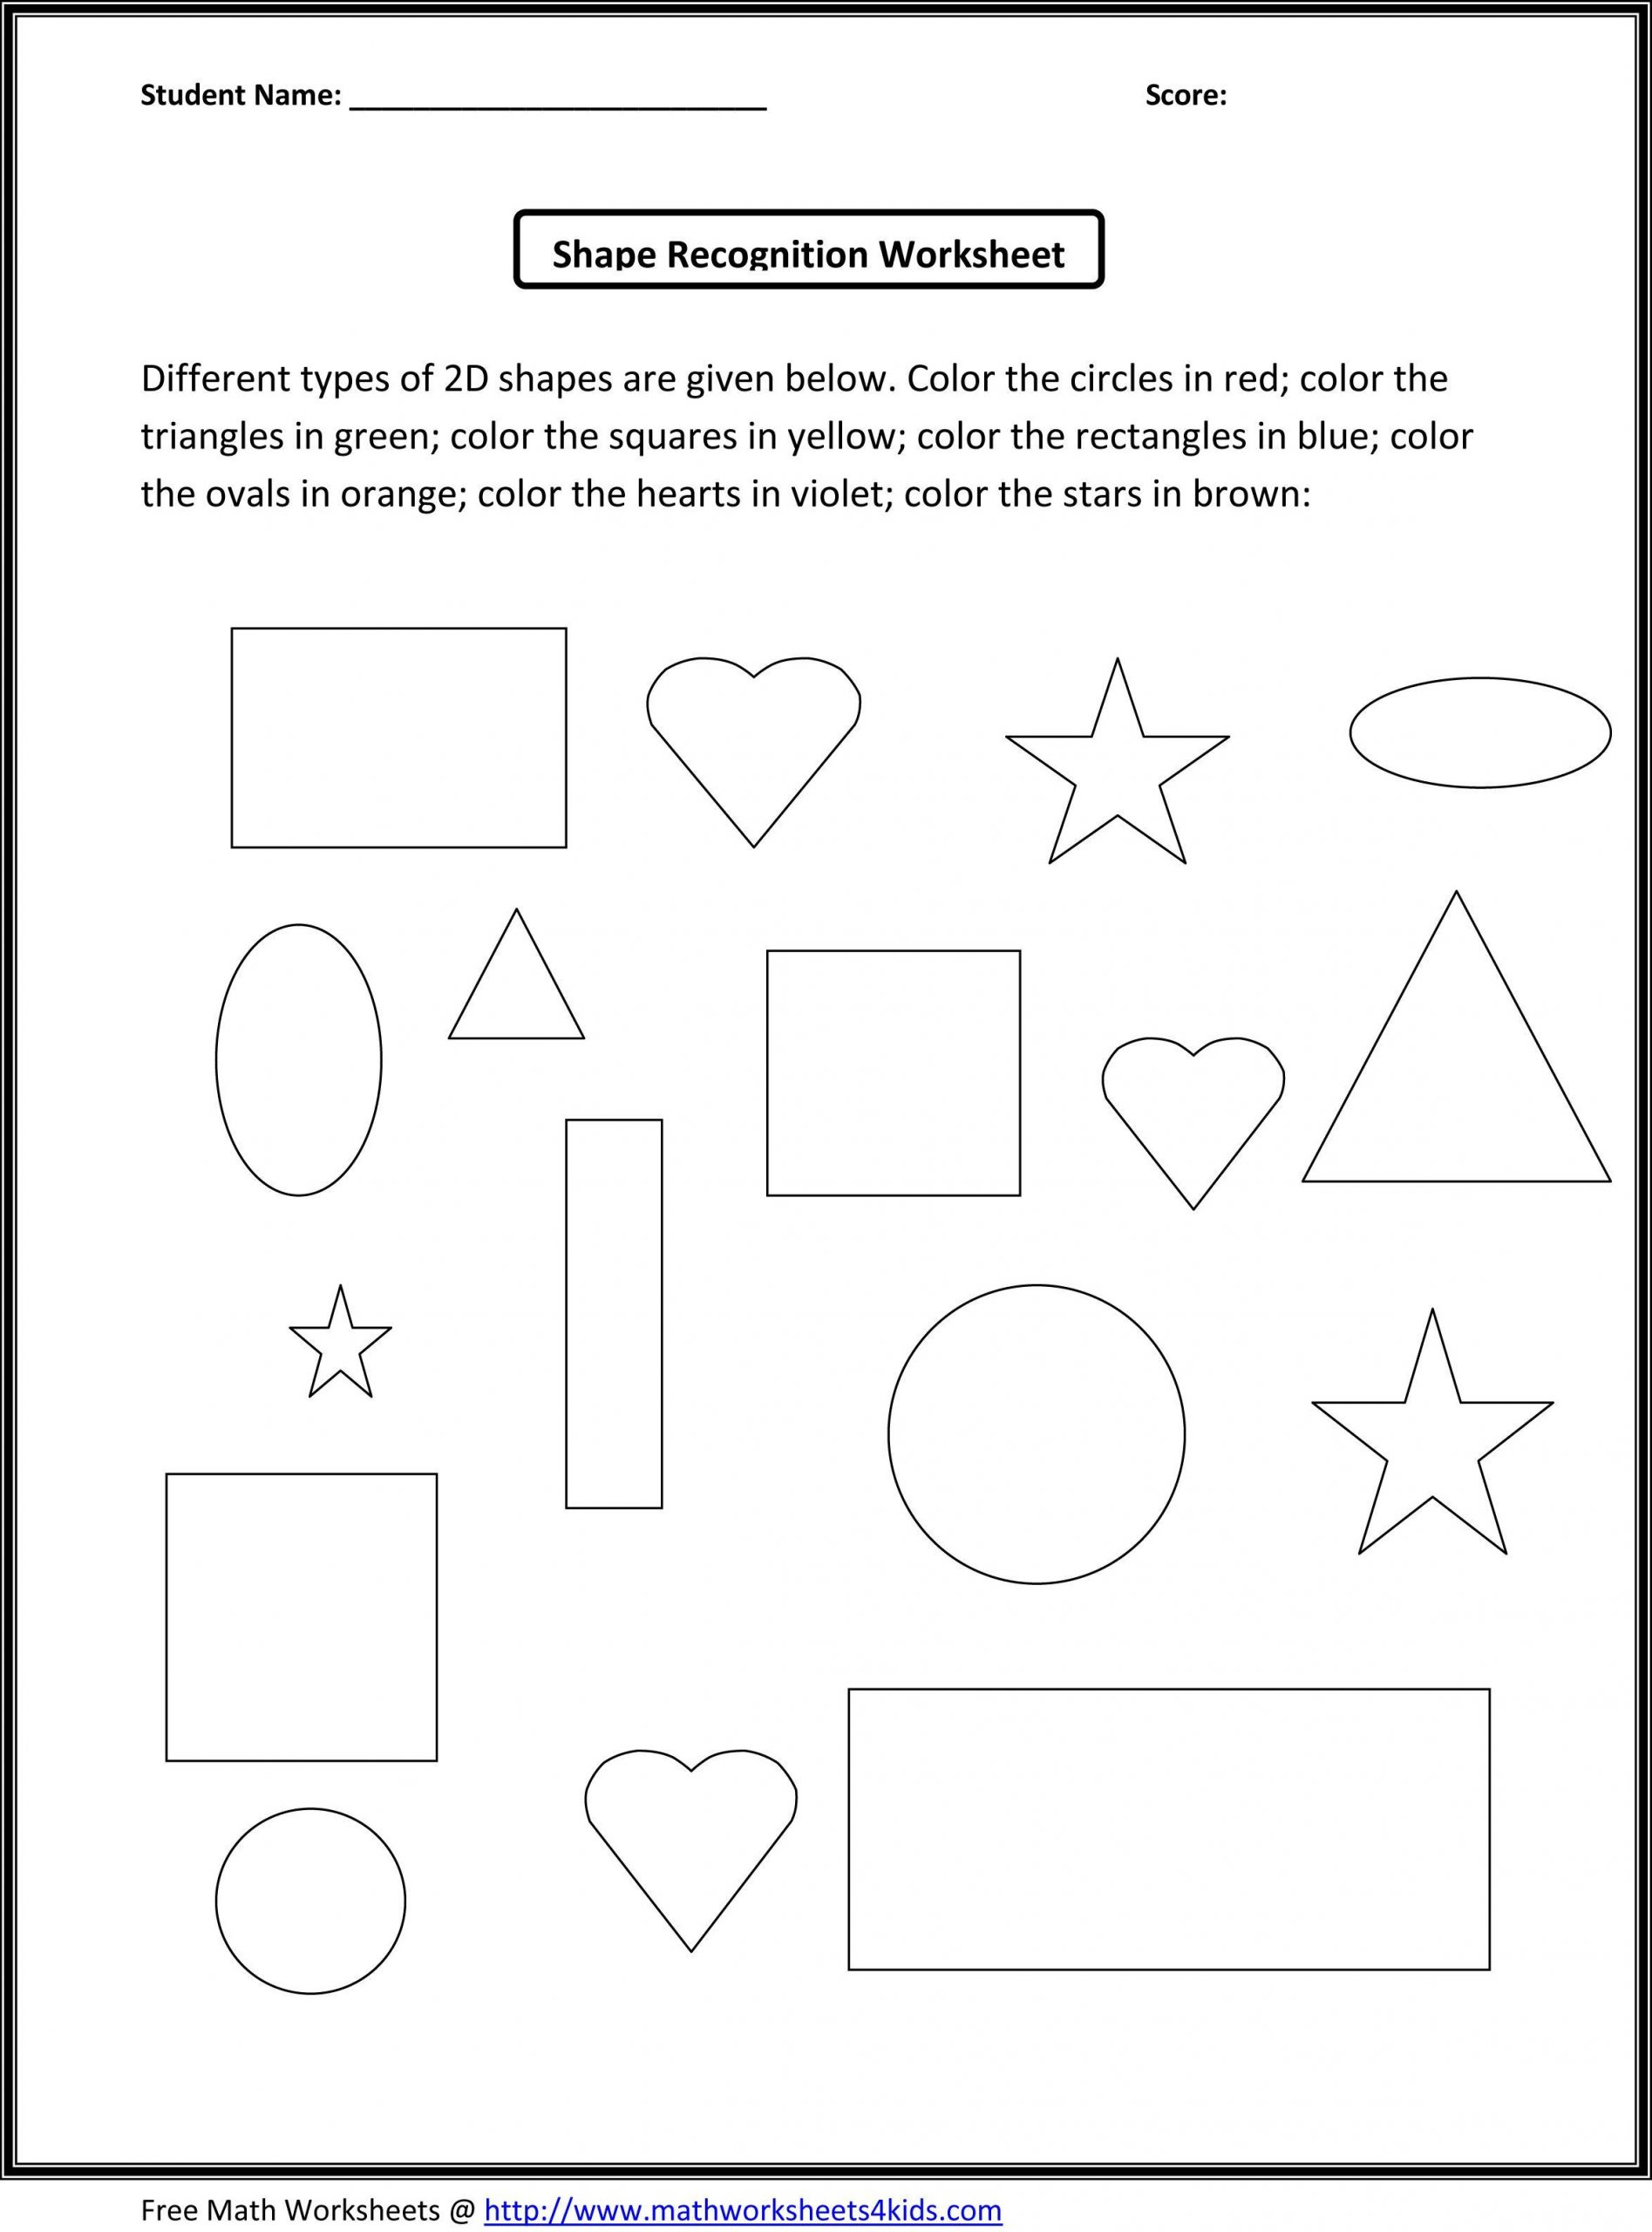 Spanish Kindergarten Worksheets Worksheet For Kindergarten